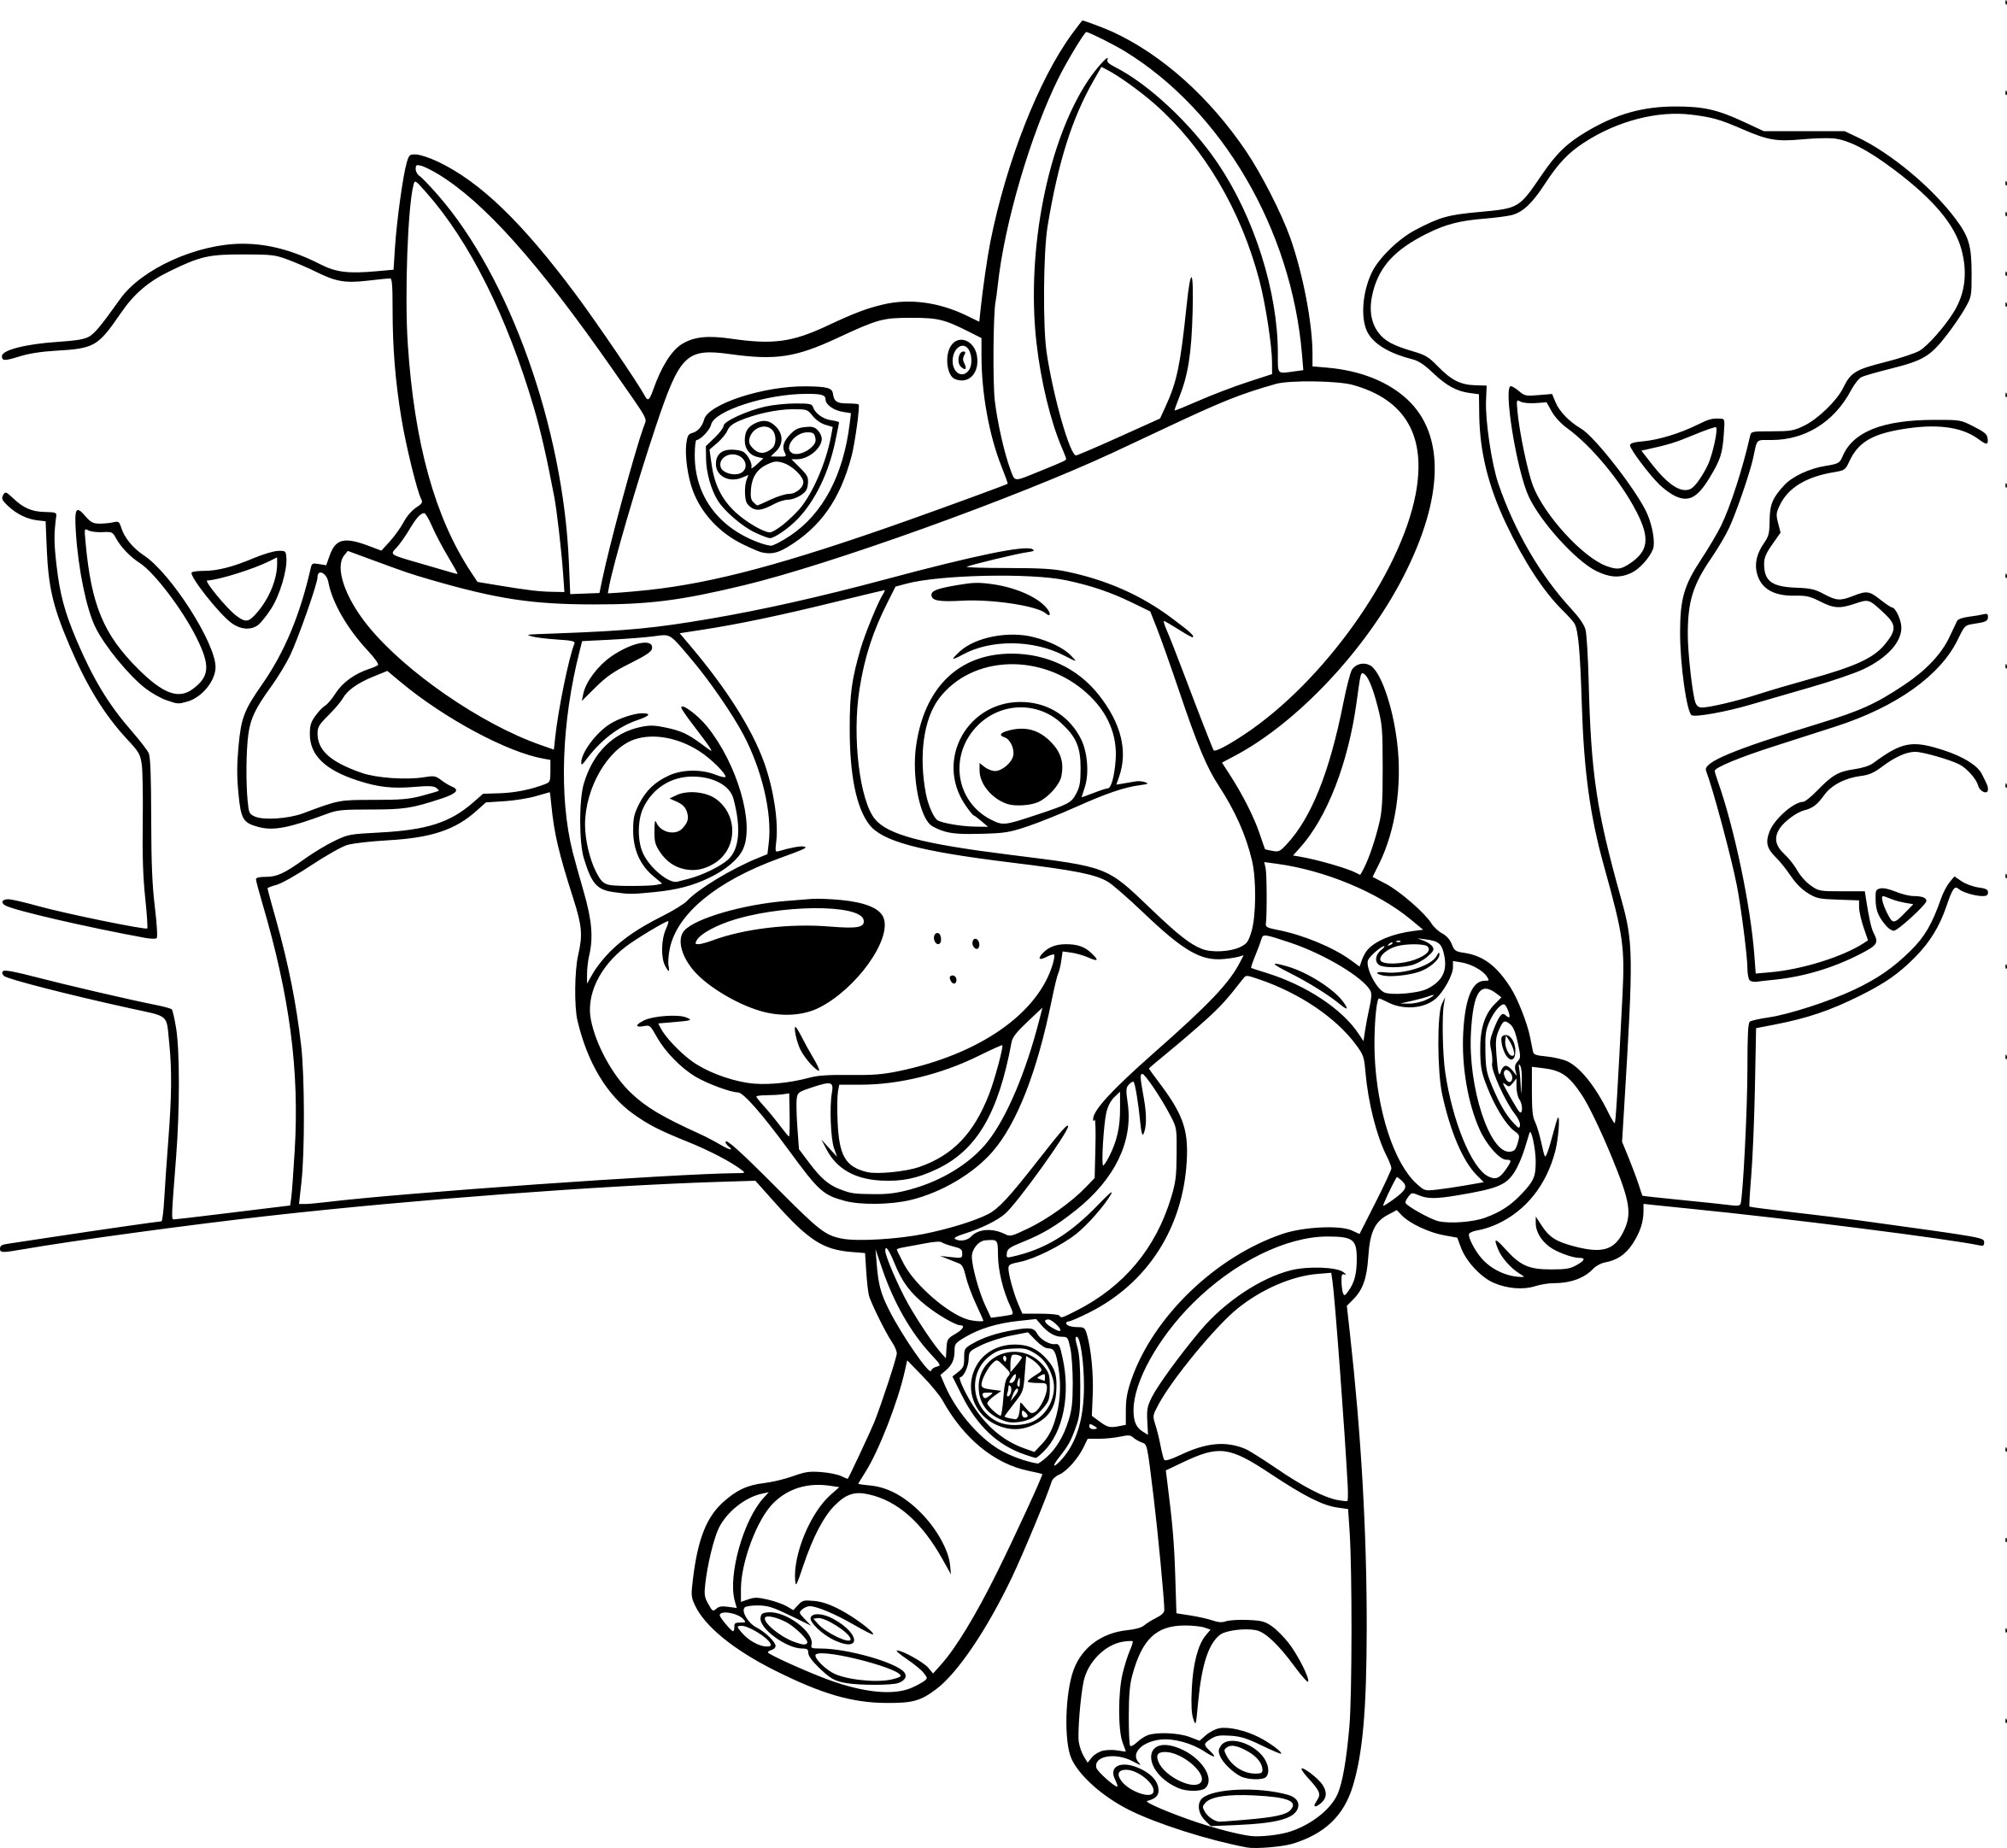 print paw patrol coloring pages paw patrol coloring pages printable coloring pages paw print patrol